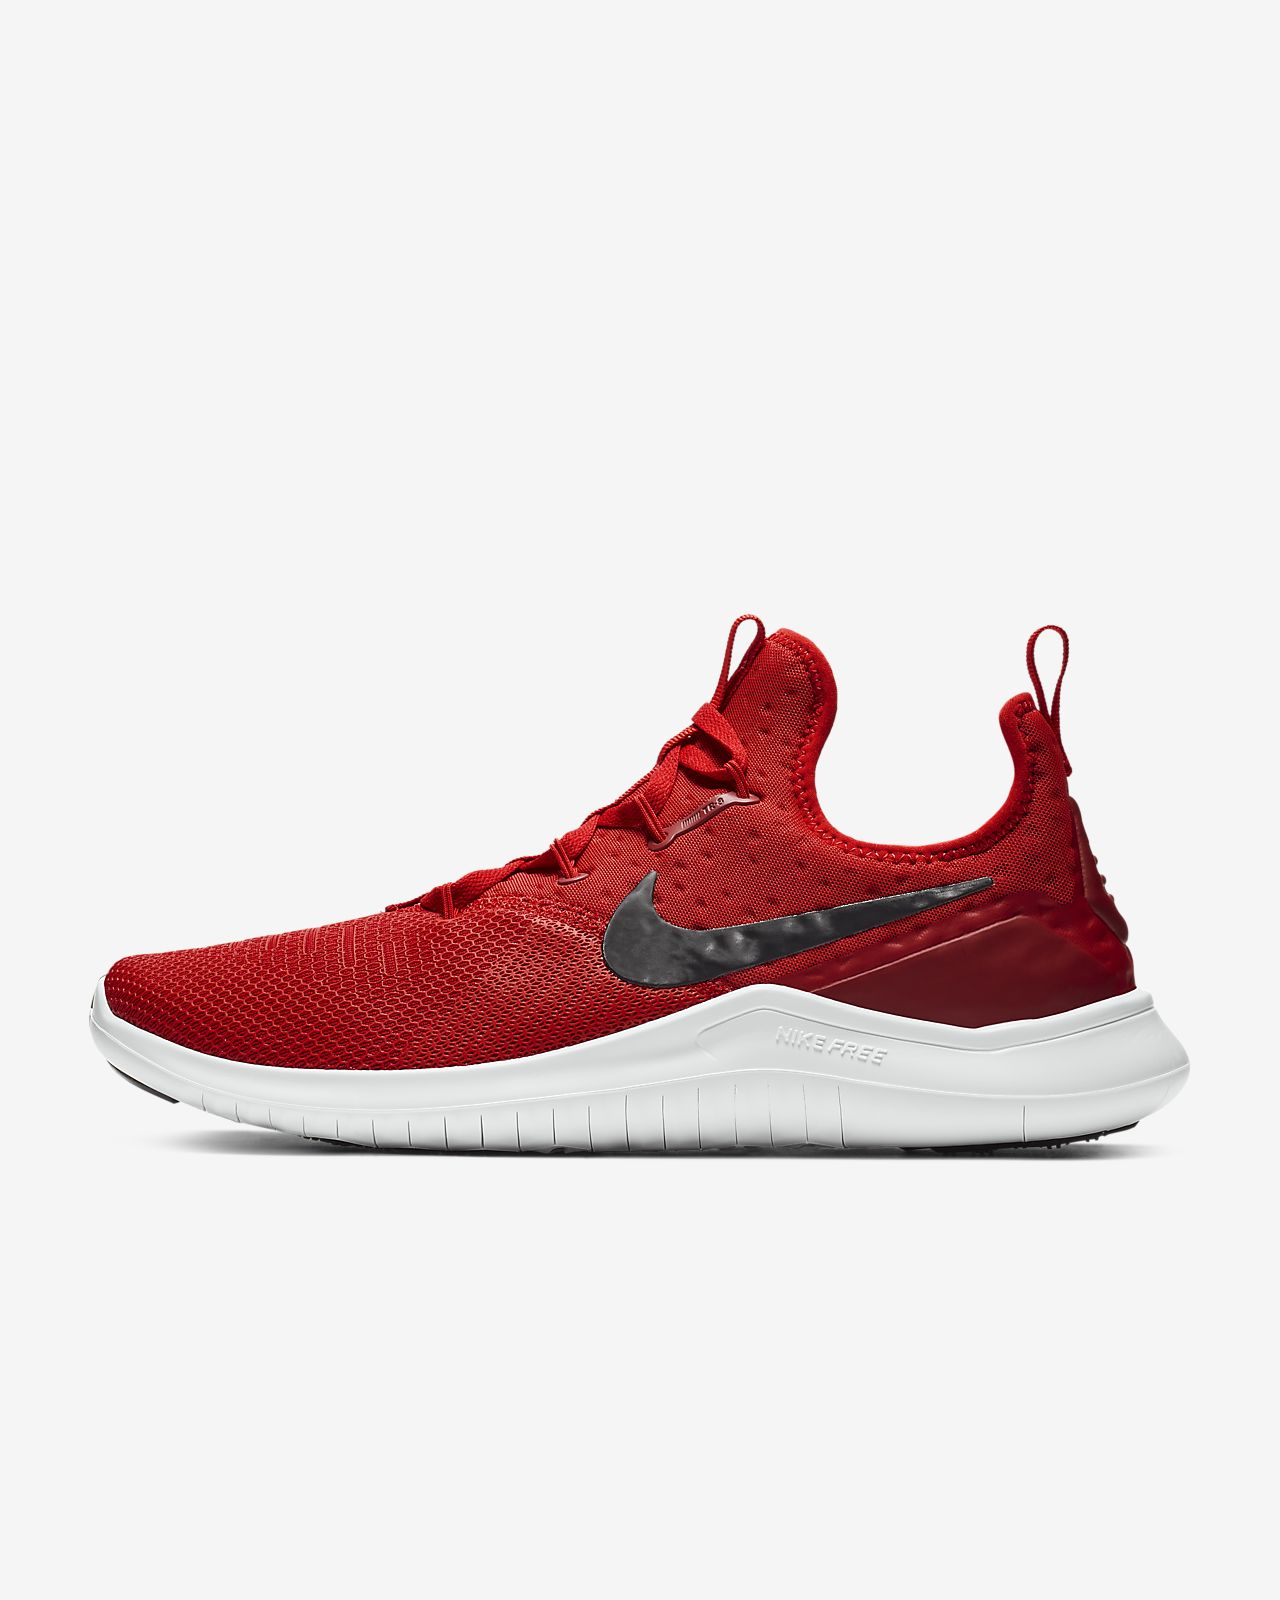 Nike Free TR 8 Men's Training Shoe